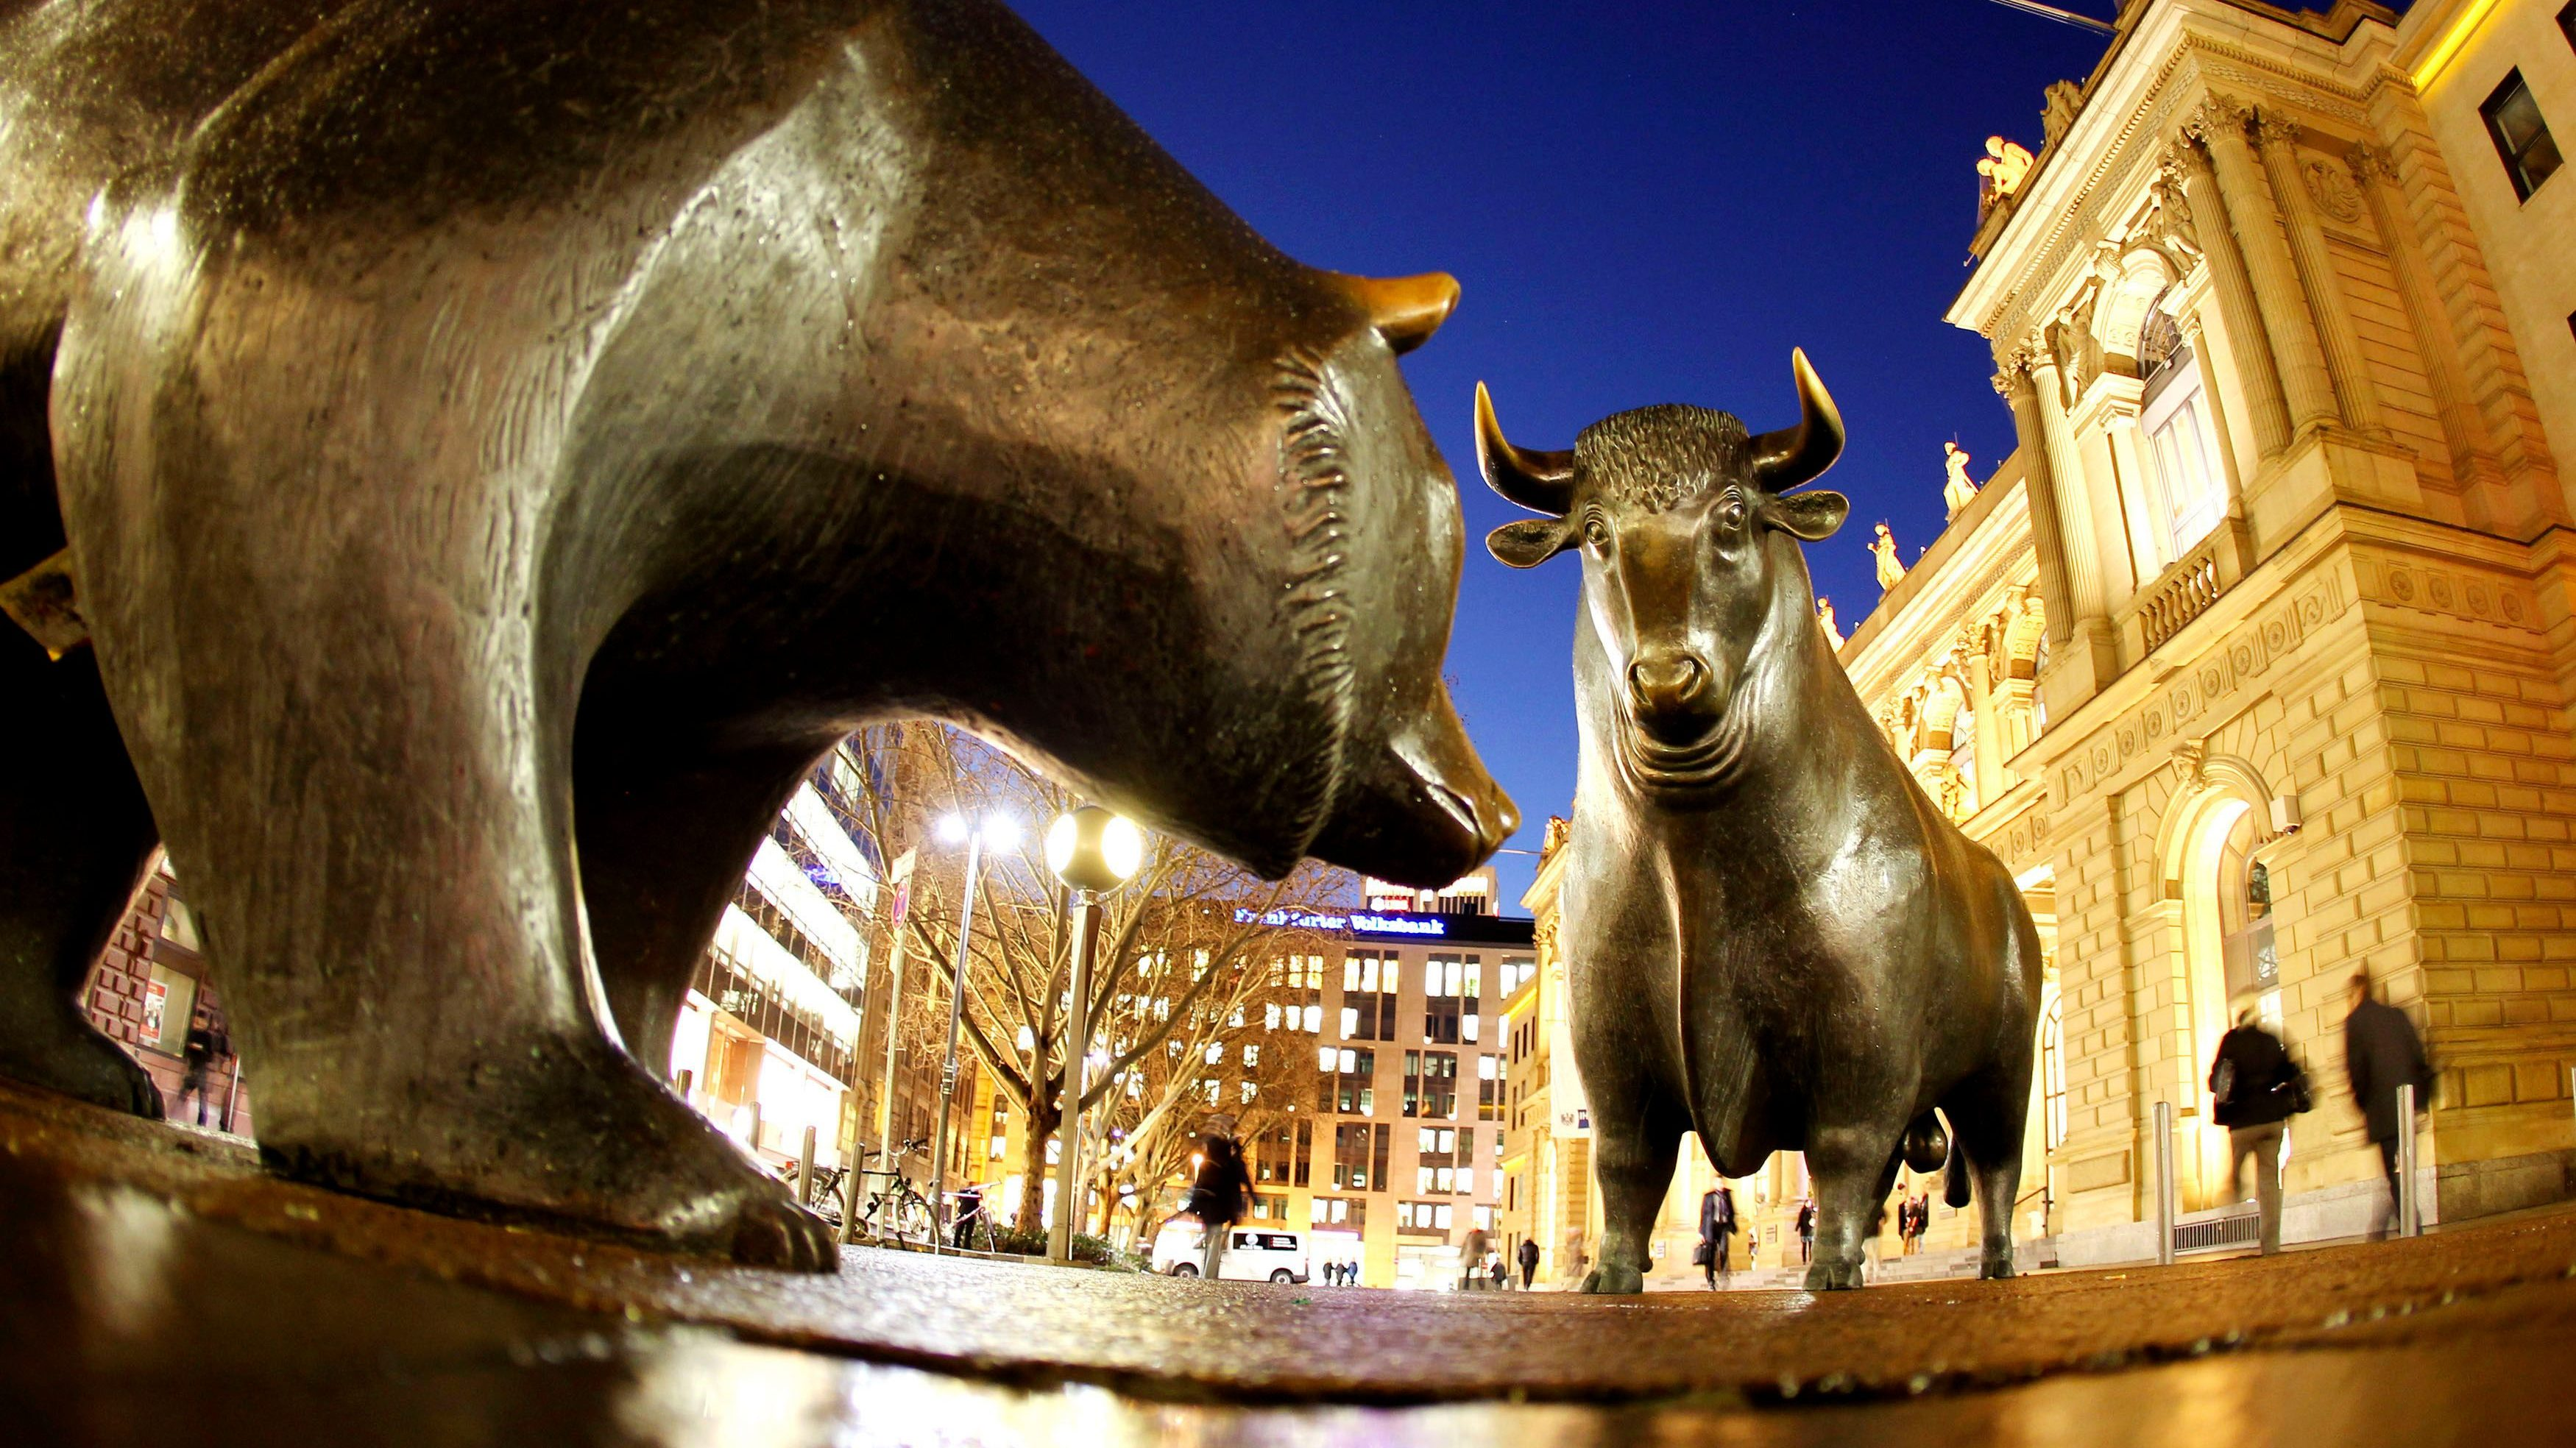 "In this Dec. 12, 2011 file photo the bull and bear bronze statue stands outside the stock market, Deutsche Boerse AG, in Frankfurt, Germany. Germany's Deutsche Boerse said Tuesday, March 20, 2012, it will sue the European Union's competition regulator over its decision to block the company's US dollar 10 billion merger with NYSE Euronext. Deutsche Boerse said it considers the decision by the European Commission to block the deal to be ""faulty"" on several aspects and will take its complaint to a European court in Luxembourg."